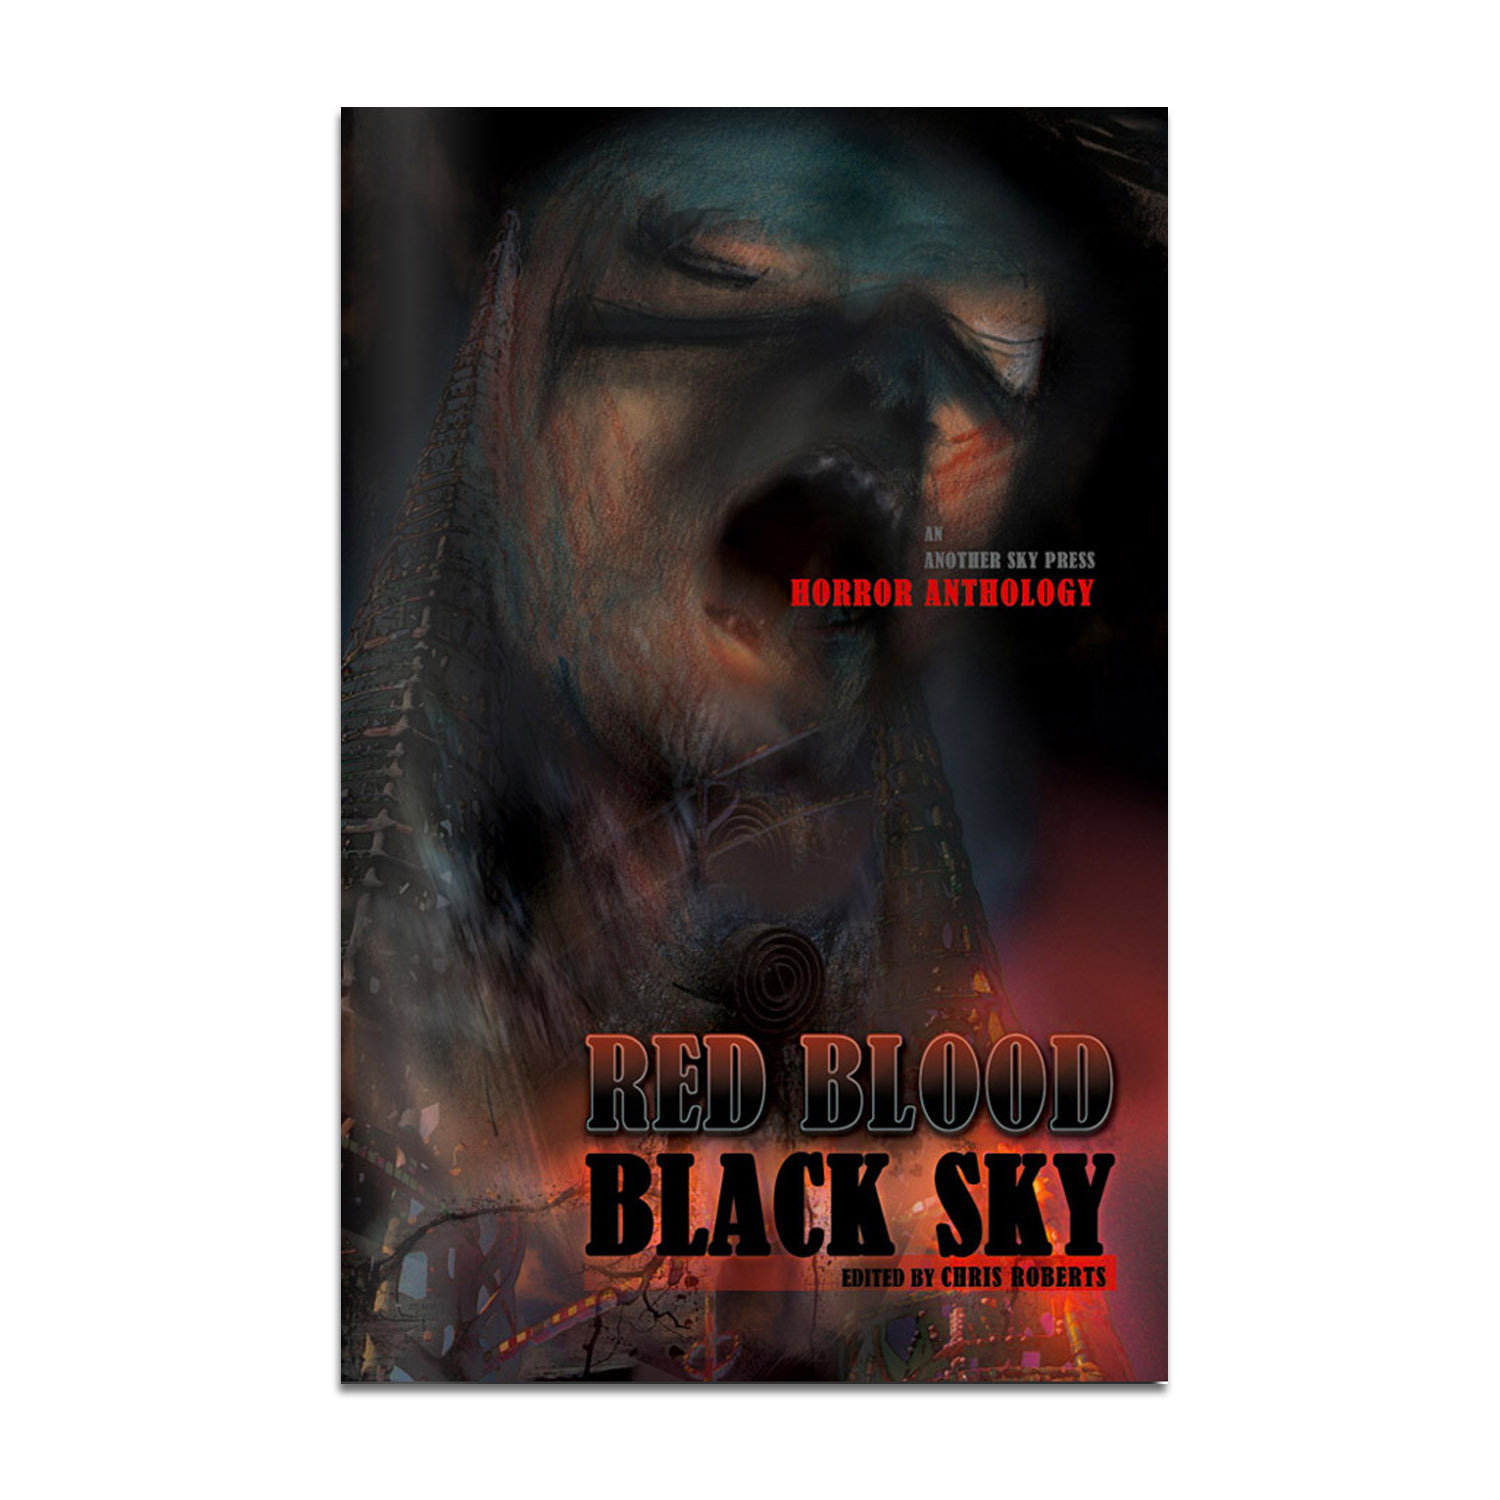 Horror Anthology by Another Sky Press